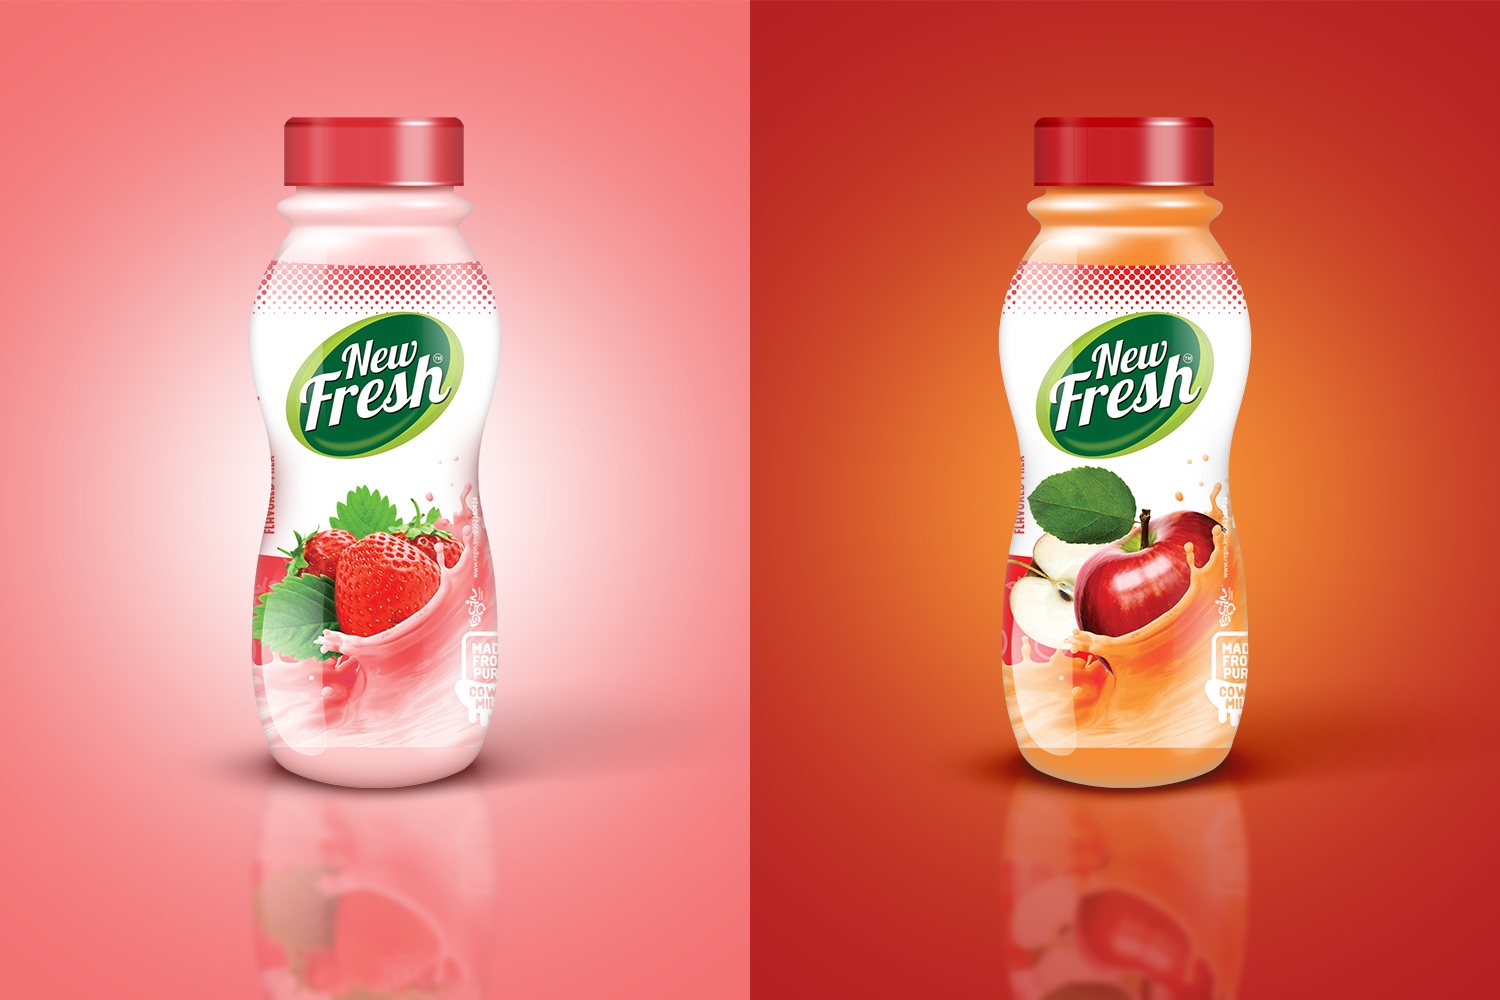 New Fresh Flavoured Milk Series